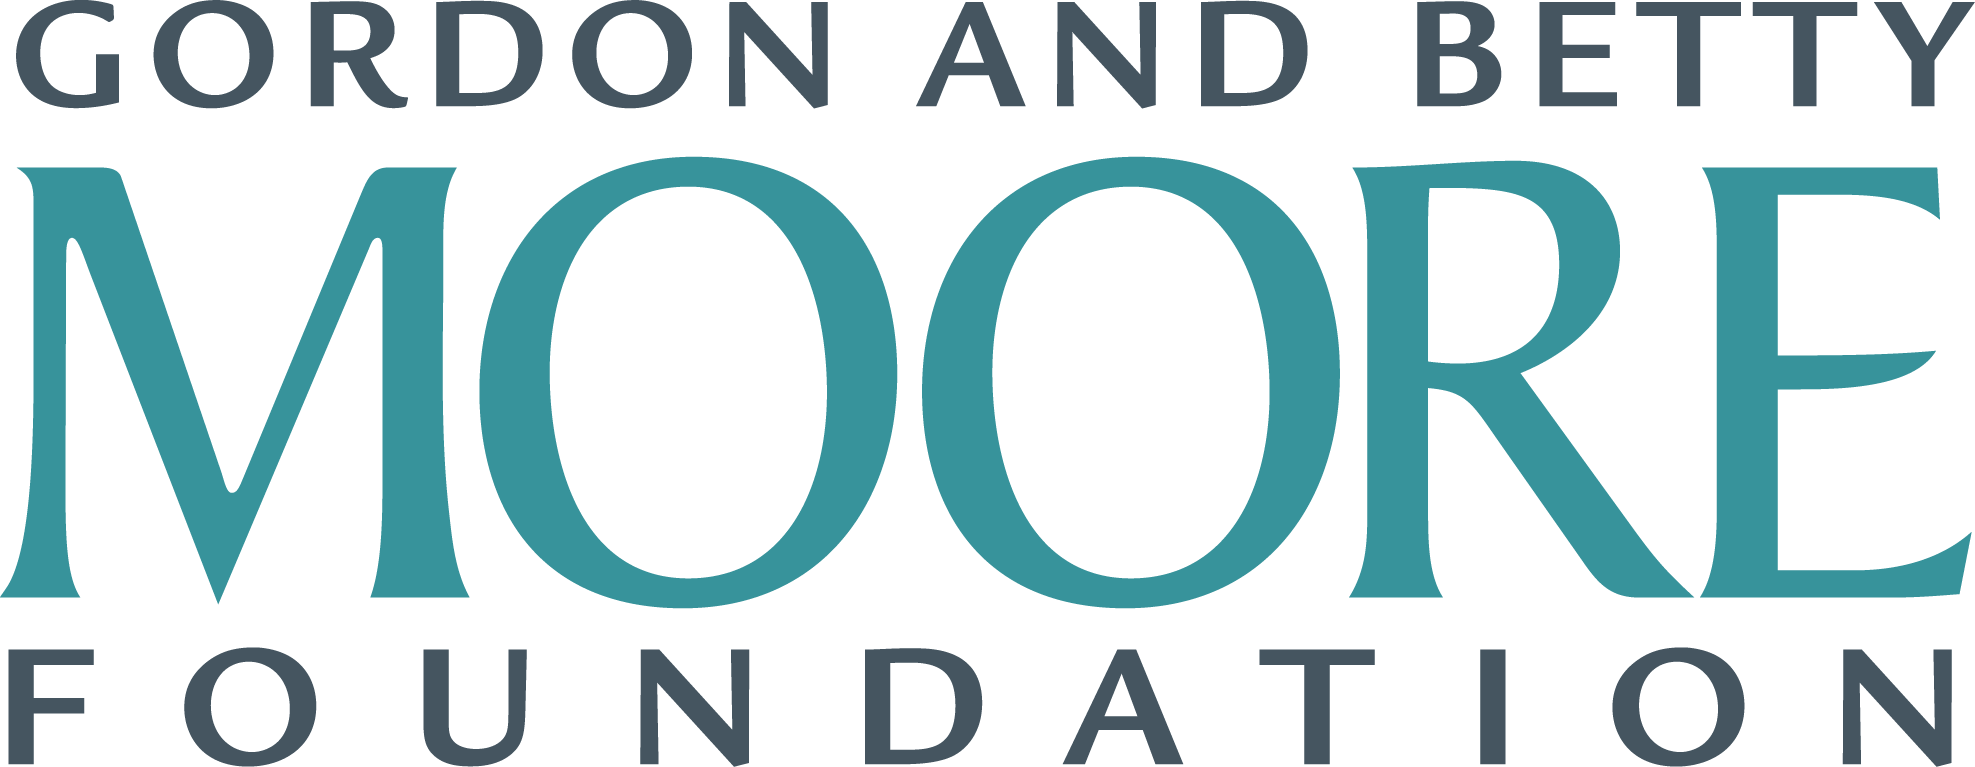 Gordon & Betty Moore Foundation